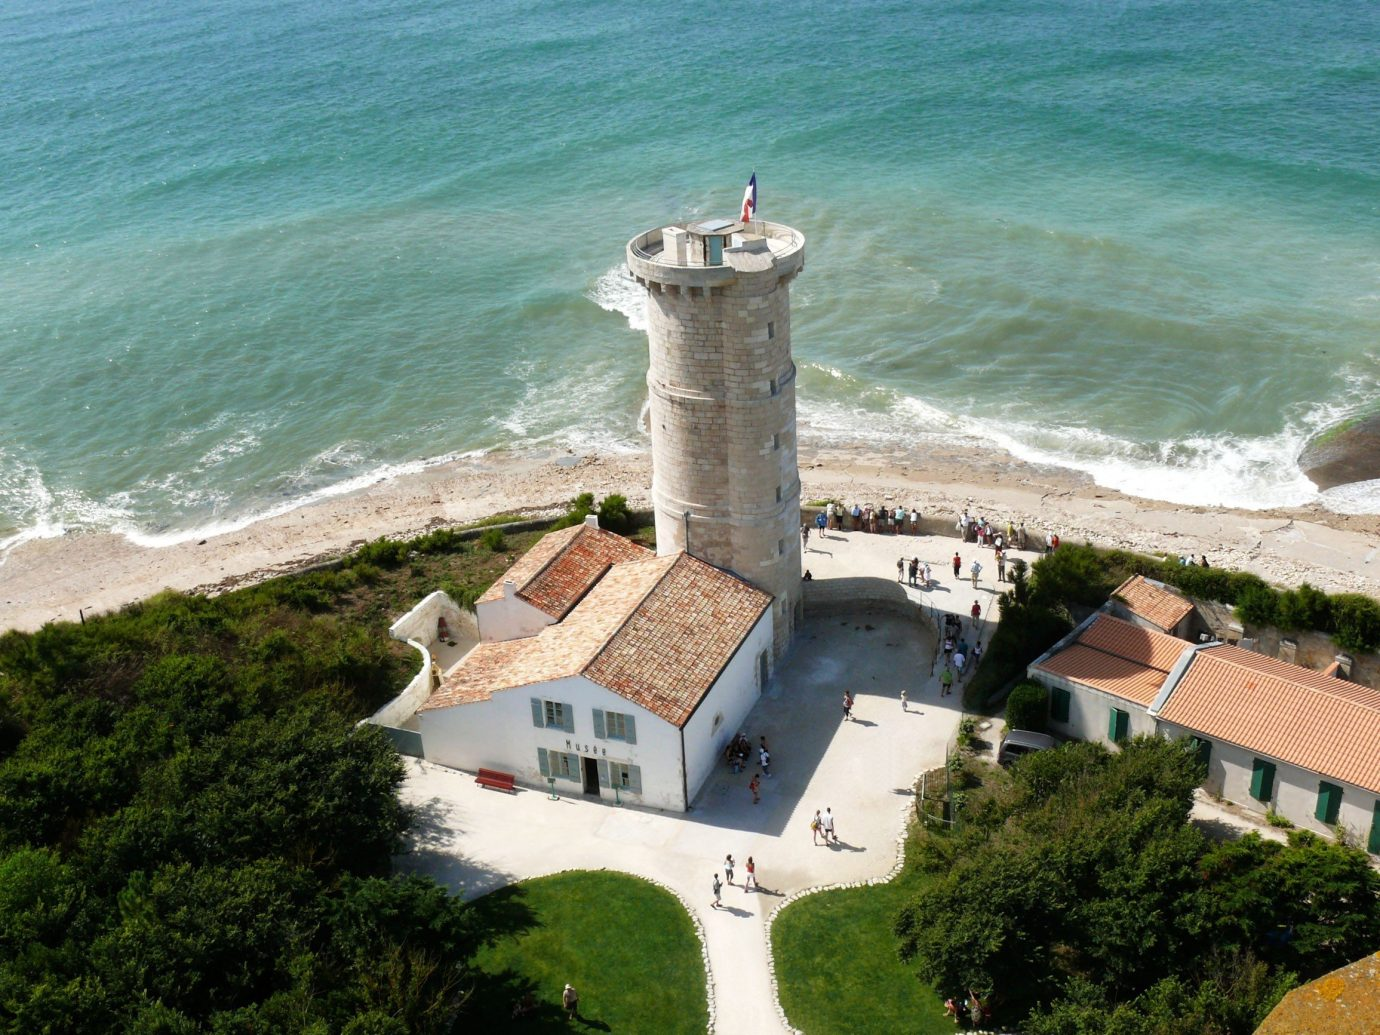 Trip Ideas outdoor water tower Coast Sea lighthouse vacation Nature Ocean tourism cape cliff terrain estate fortification bay cove shore